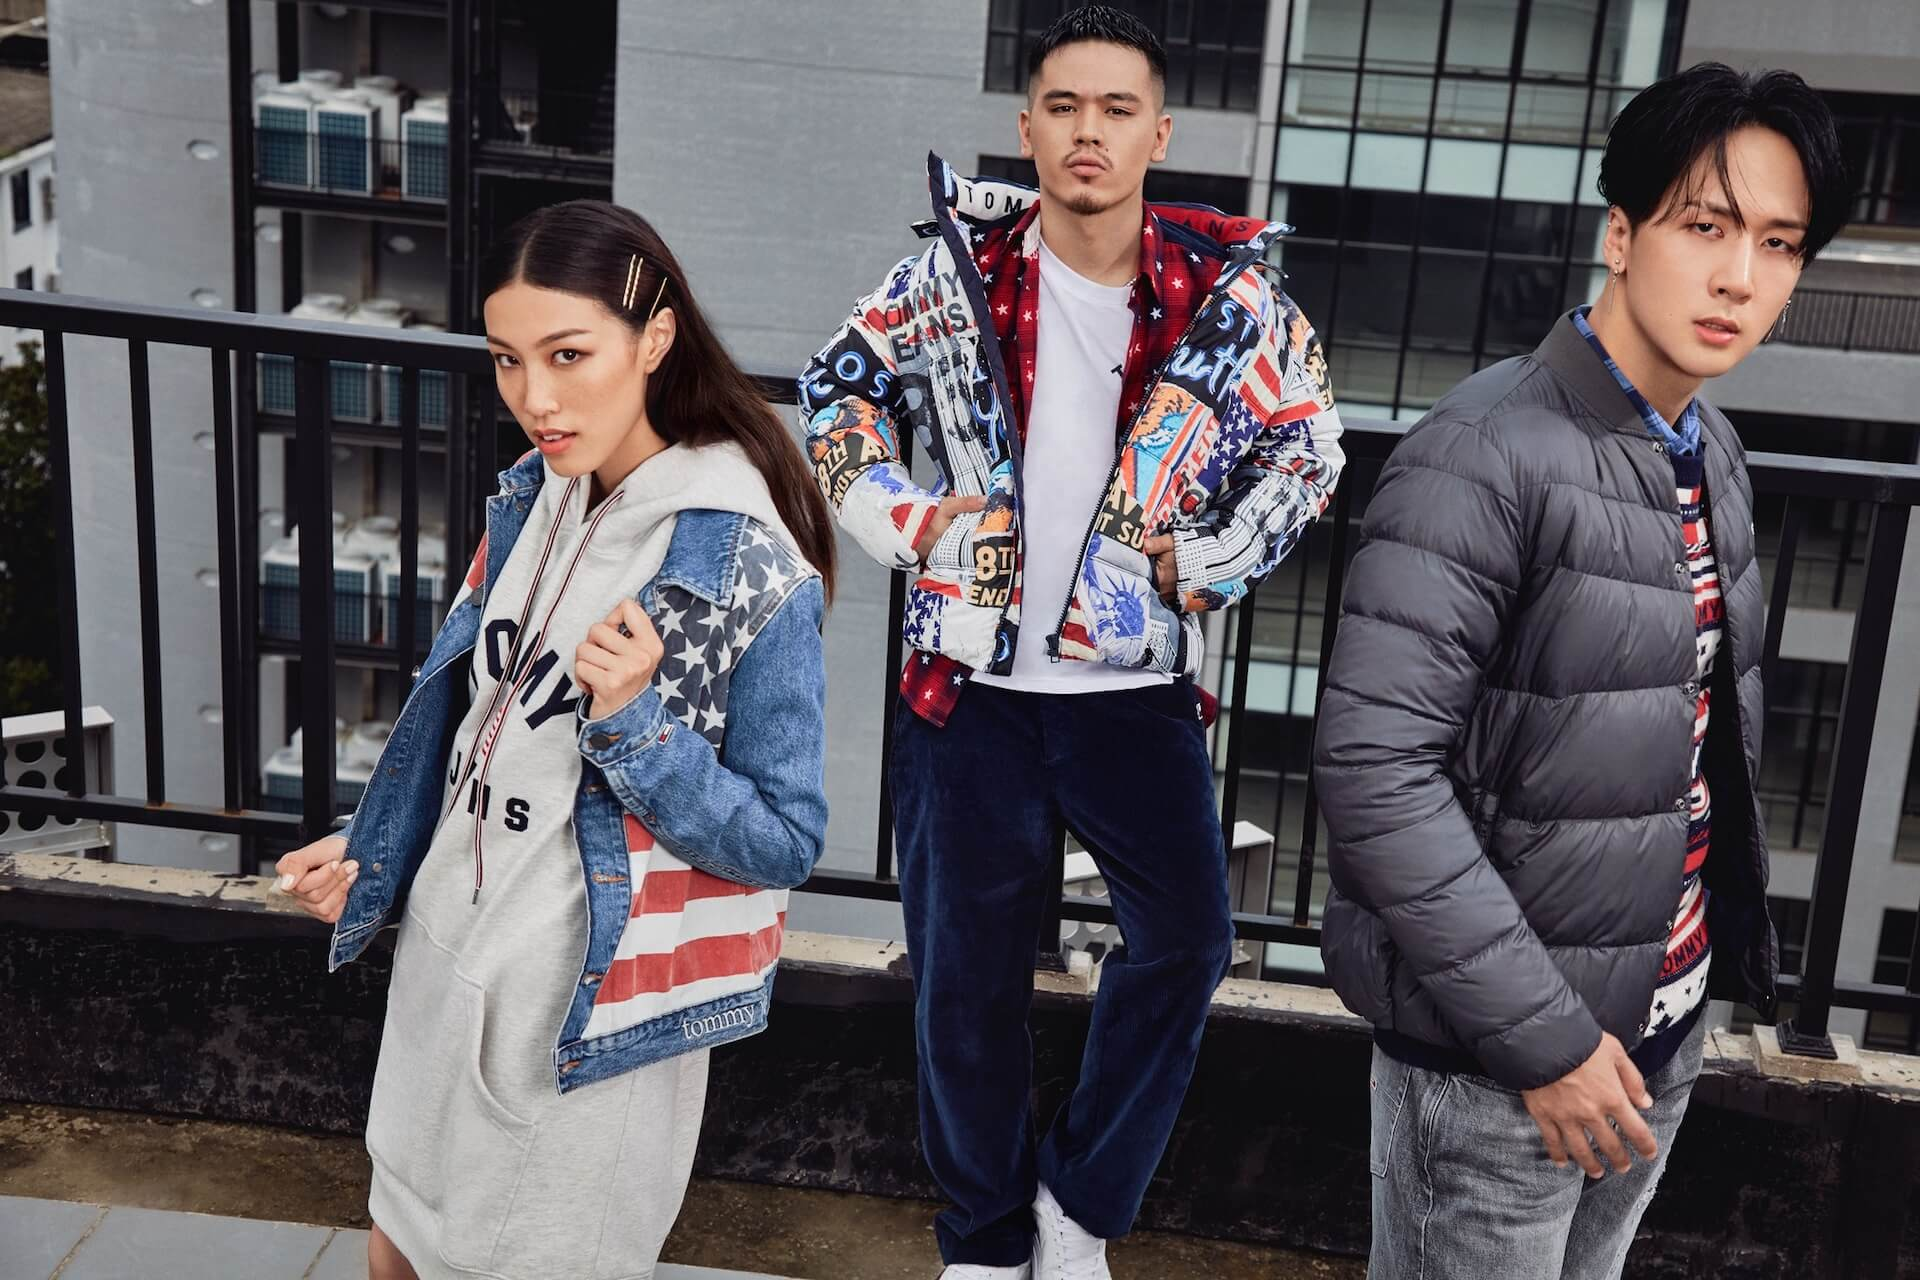 BAD HOP・T-Pablowや韓国人ラッパー・RAVIなどを起用したTOMMY JEANS 2019 Fall Collectionのビジュアルが公開 lifefashion191011_tommyjeans_3